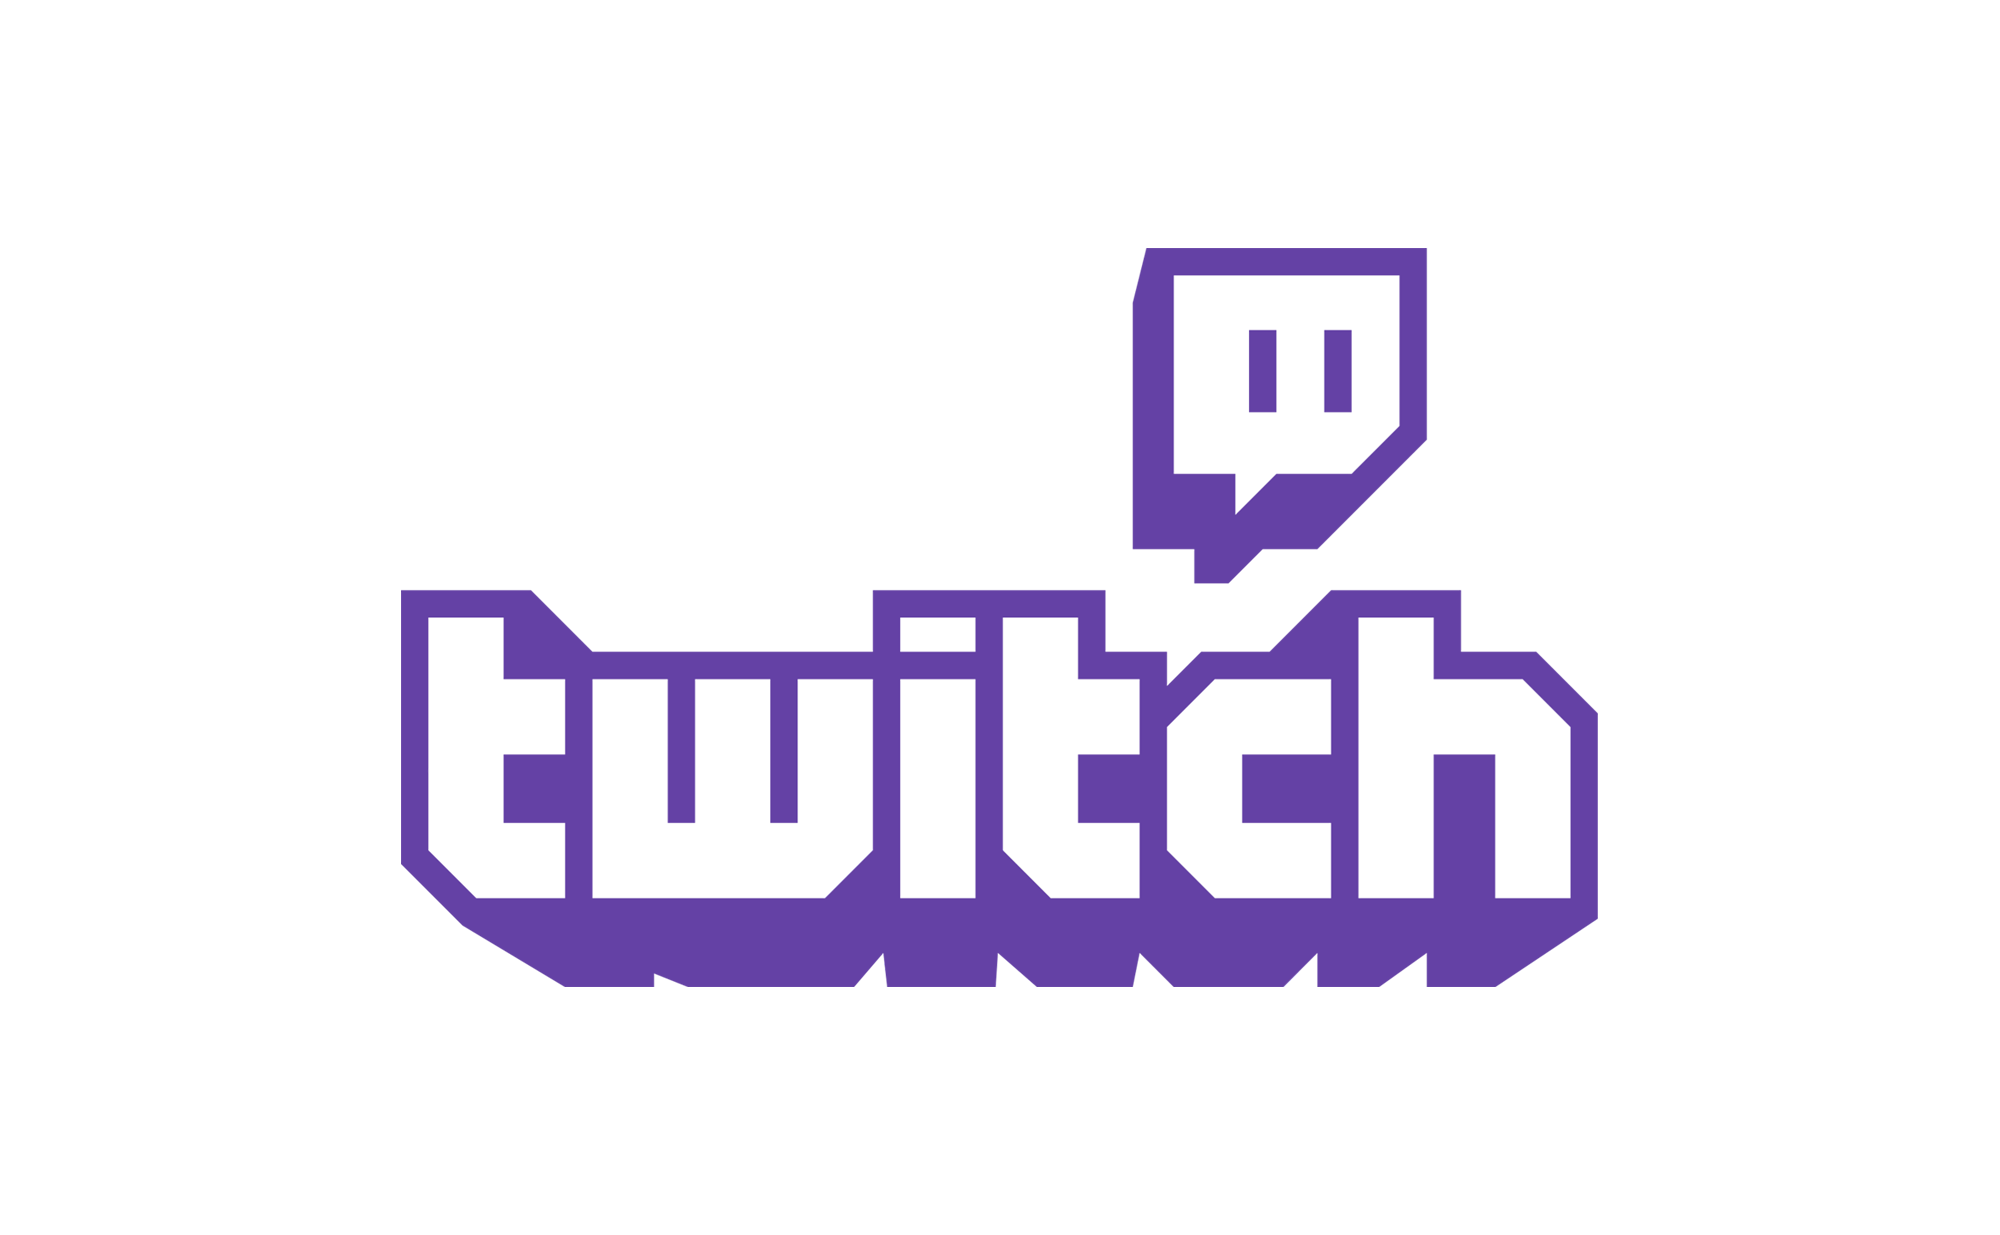 Twitch_smaller.png